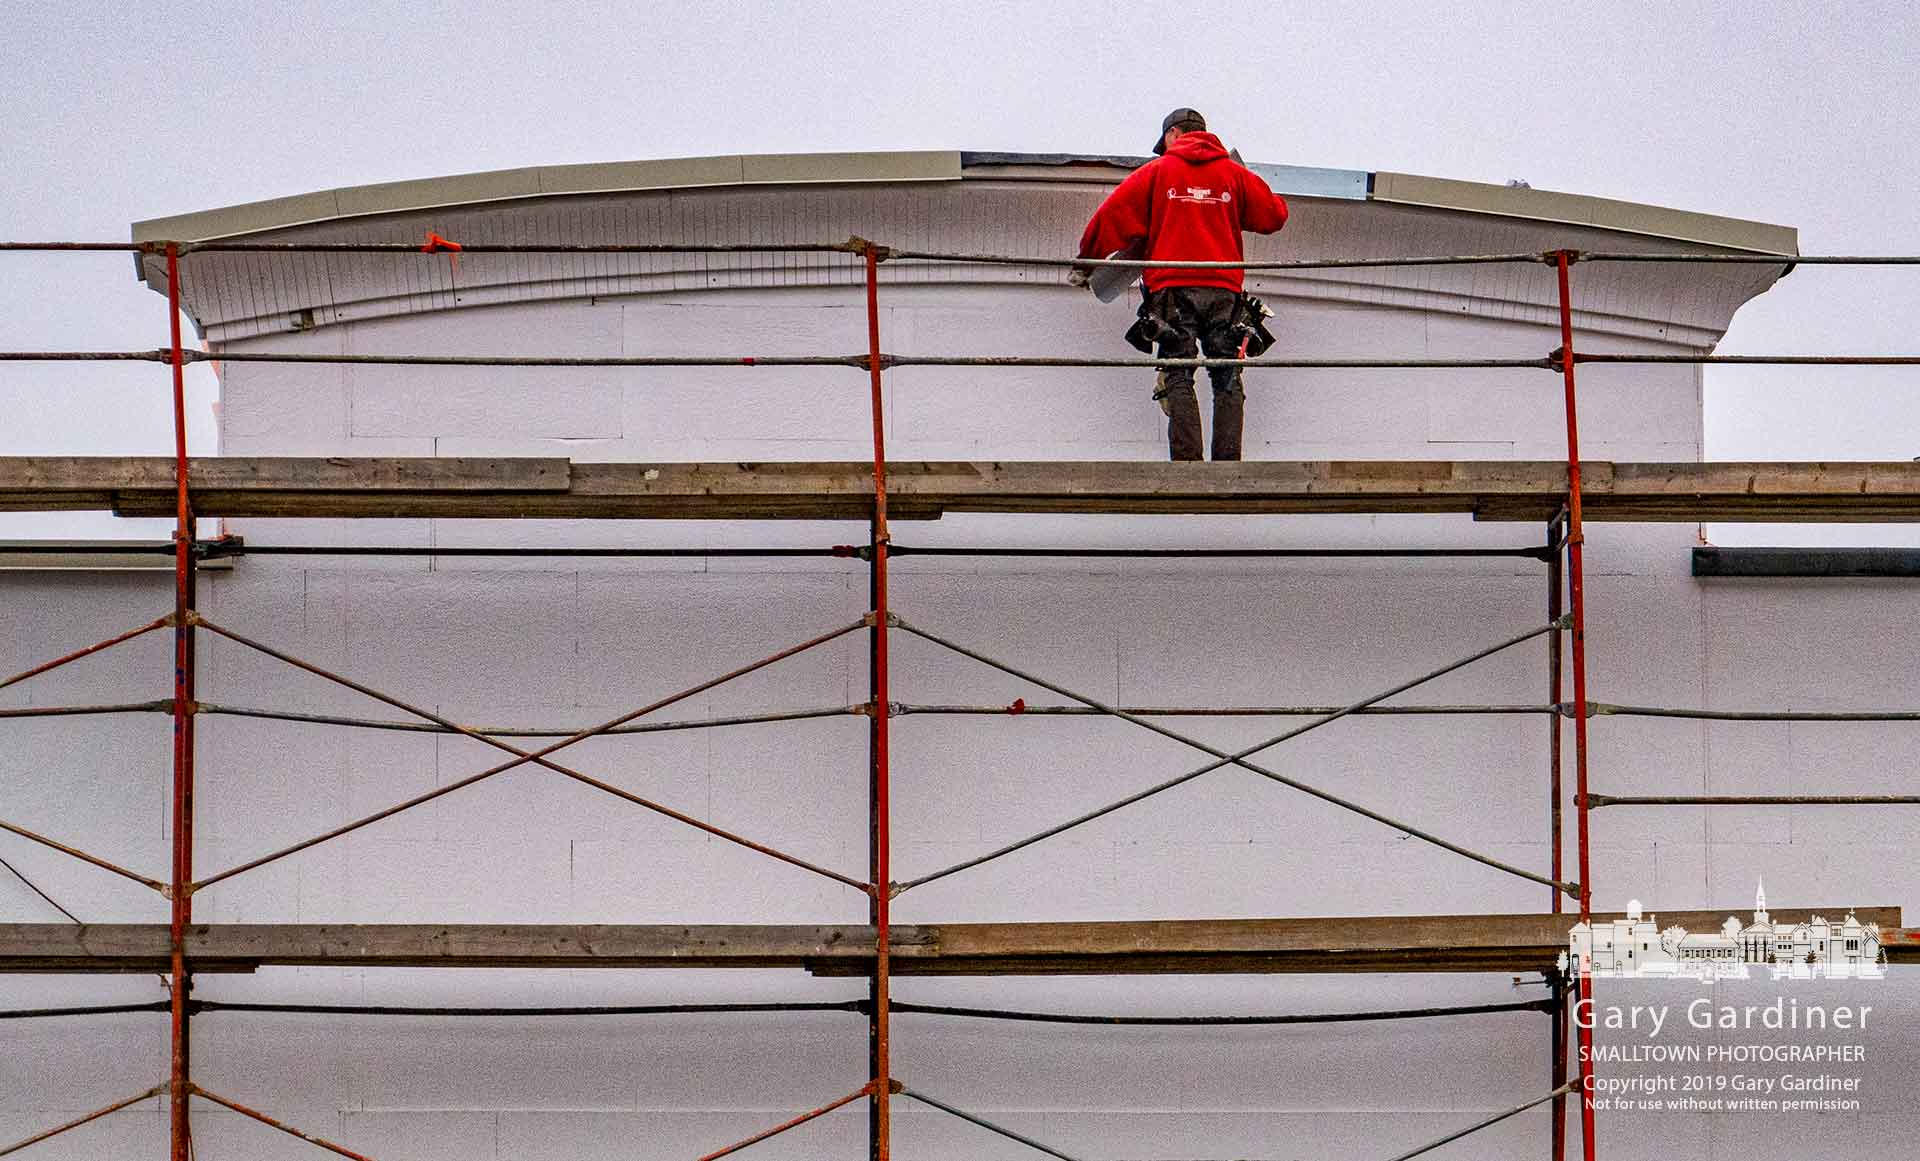 A worker installs a section of the new facade for Glengary Shopping Center as the owner upgrades and renovates the center after the opening of the new Aldi grocery store. My Final Photo for Feb. 7, 2019.